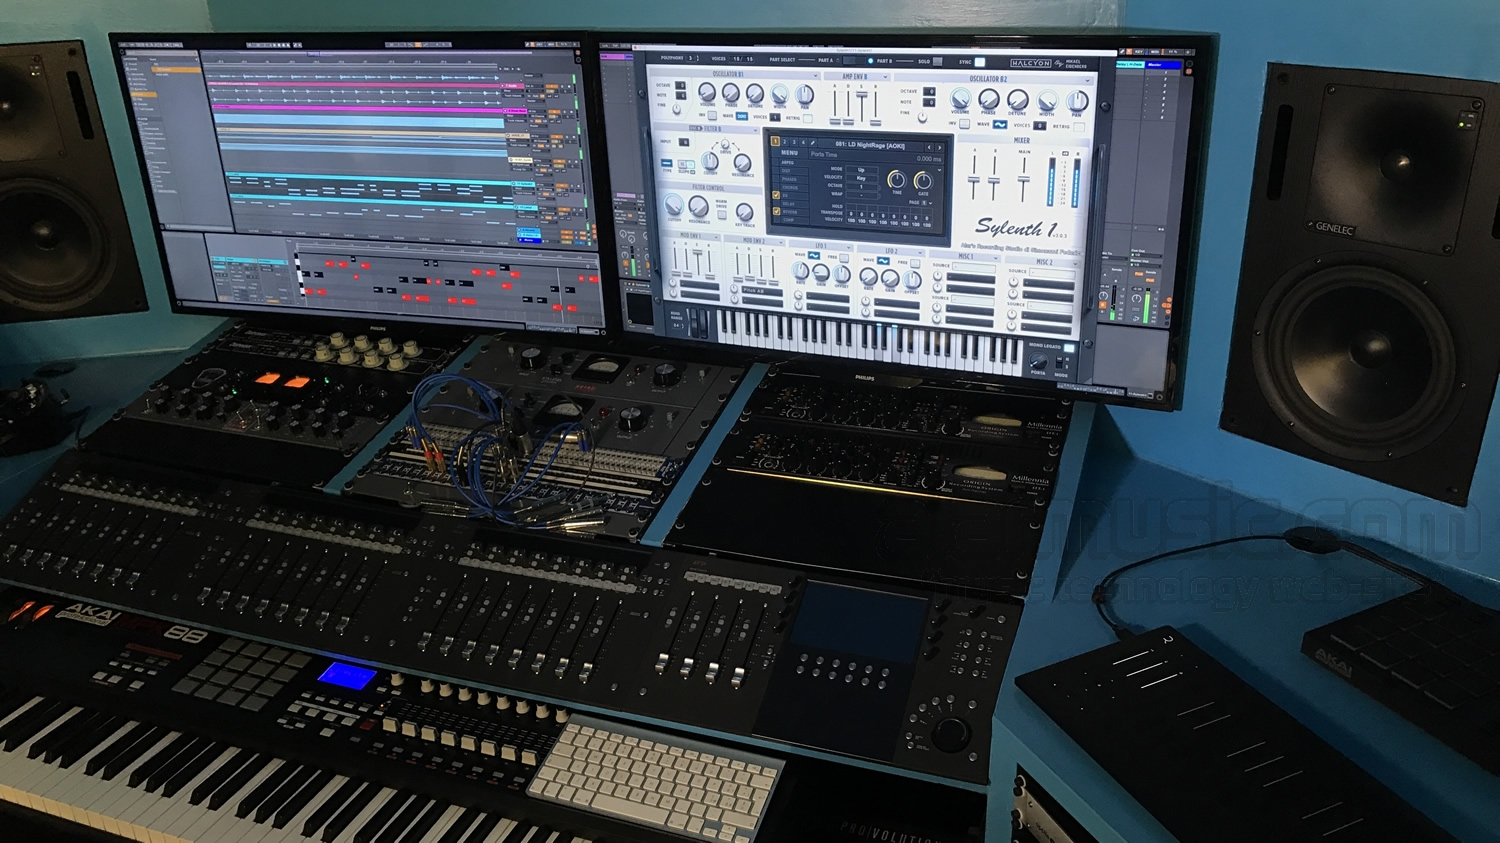 Lennar Digital Sylenth1 3.030 all'Alar's Recording Studio di Simonazzi Federico